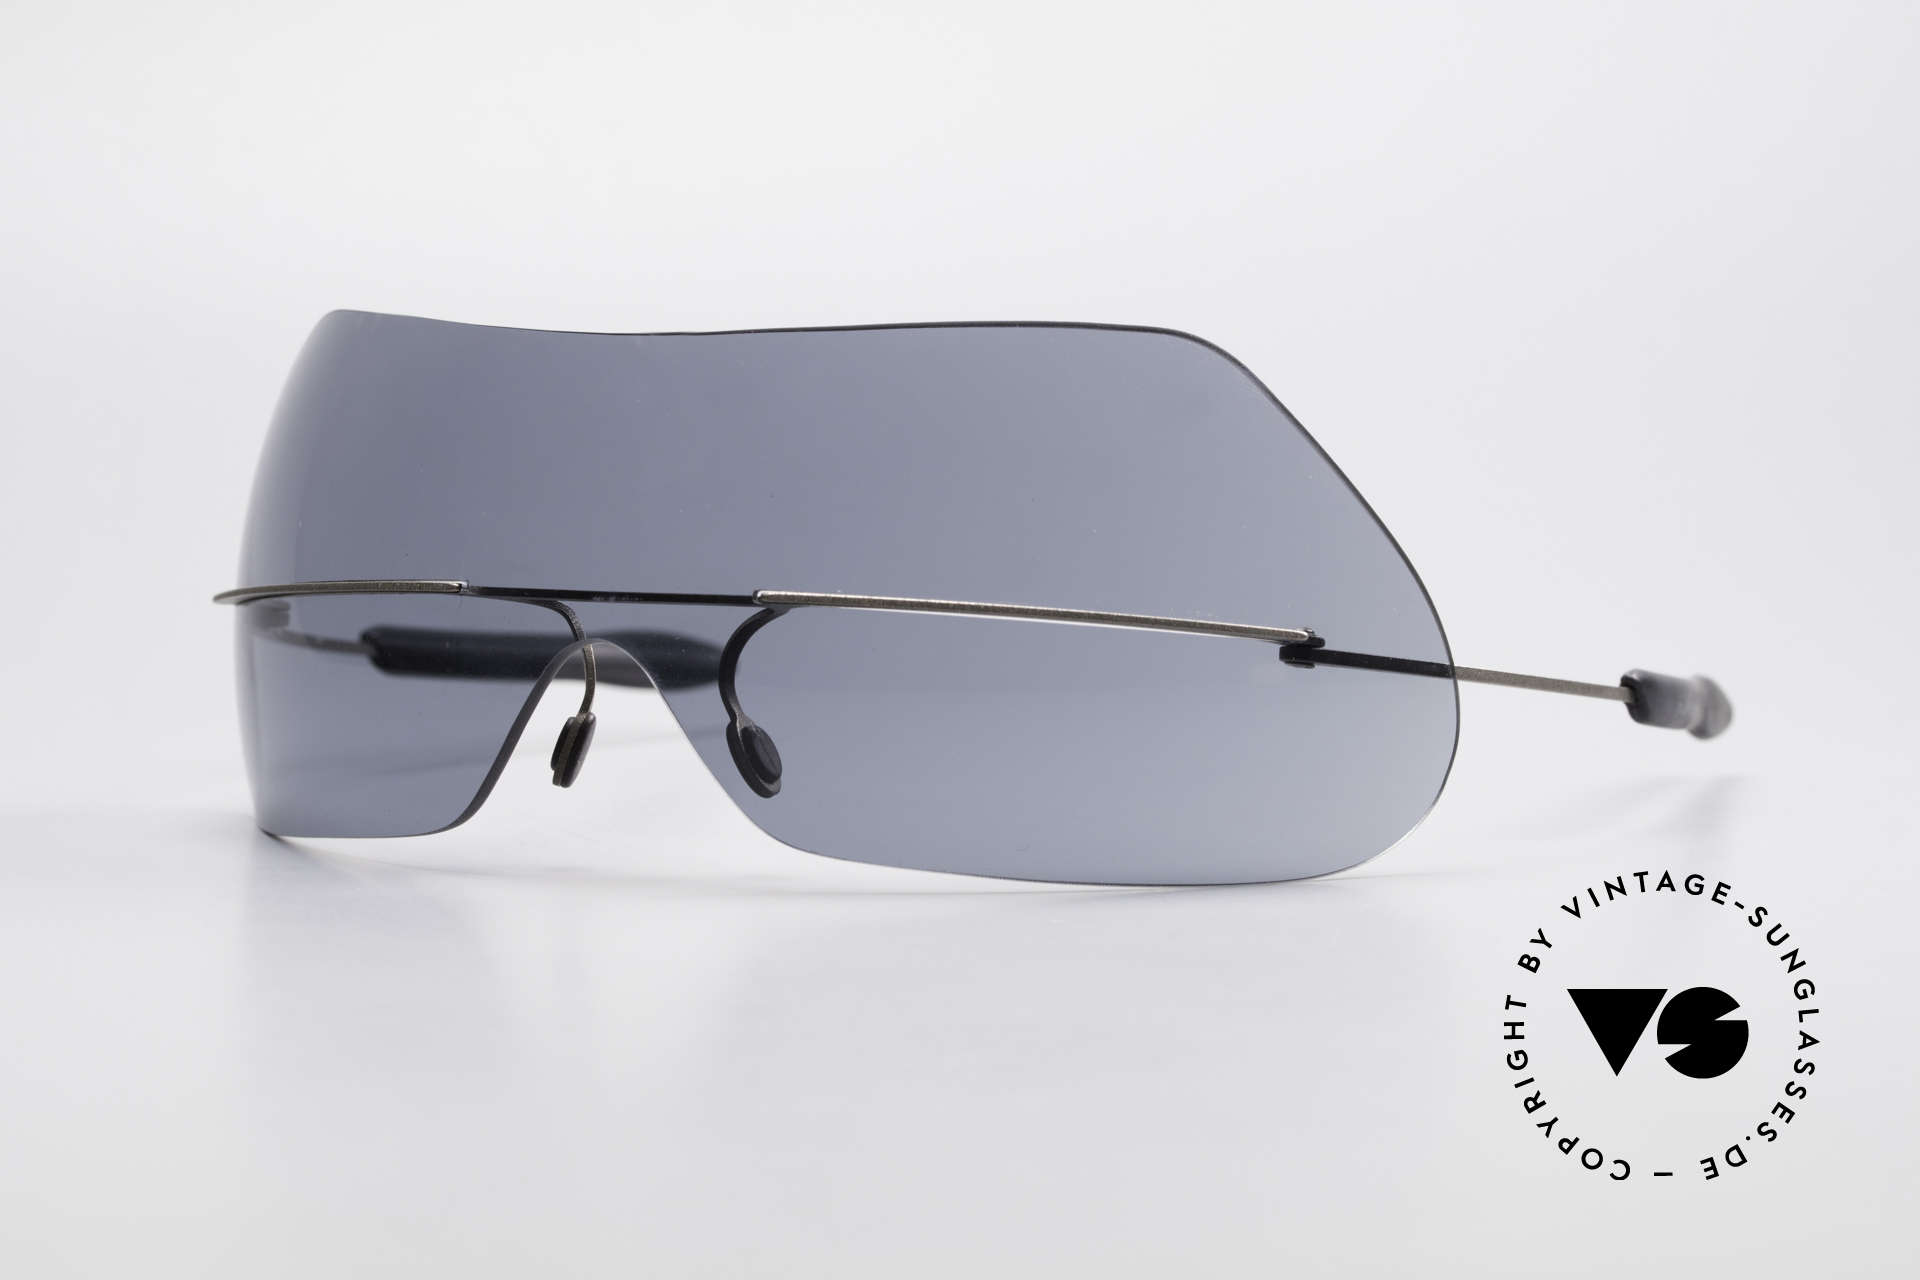 Theo Belgium Satisfashion 138 Sunglasses With Eyebrows, THEO shades of the SATISFASHION series from 2001, Made for Women